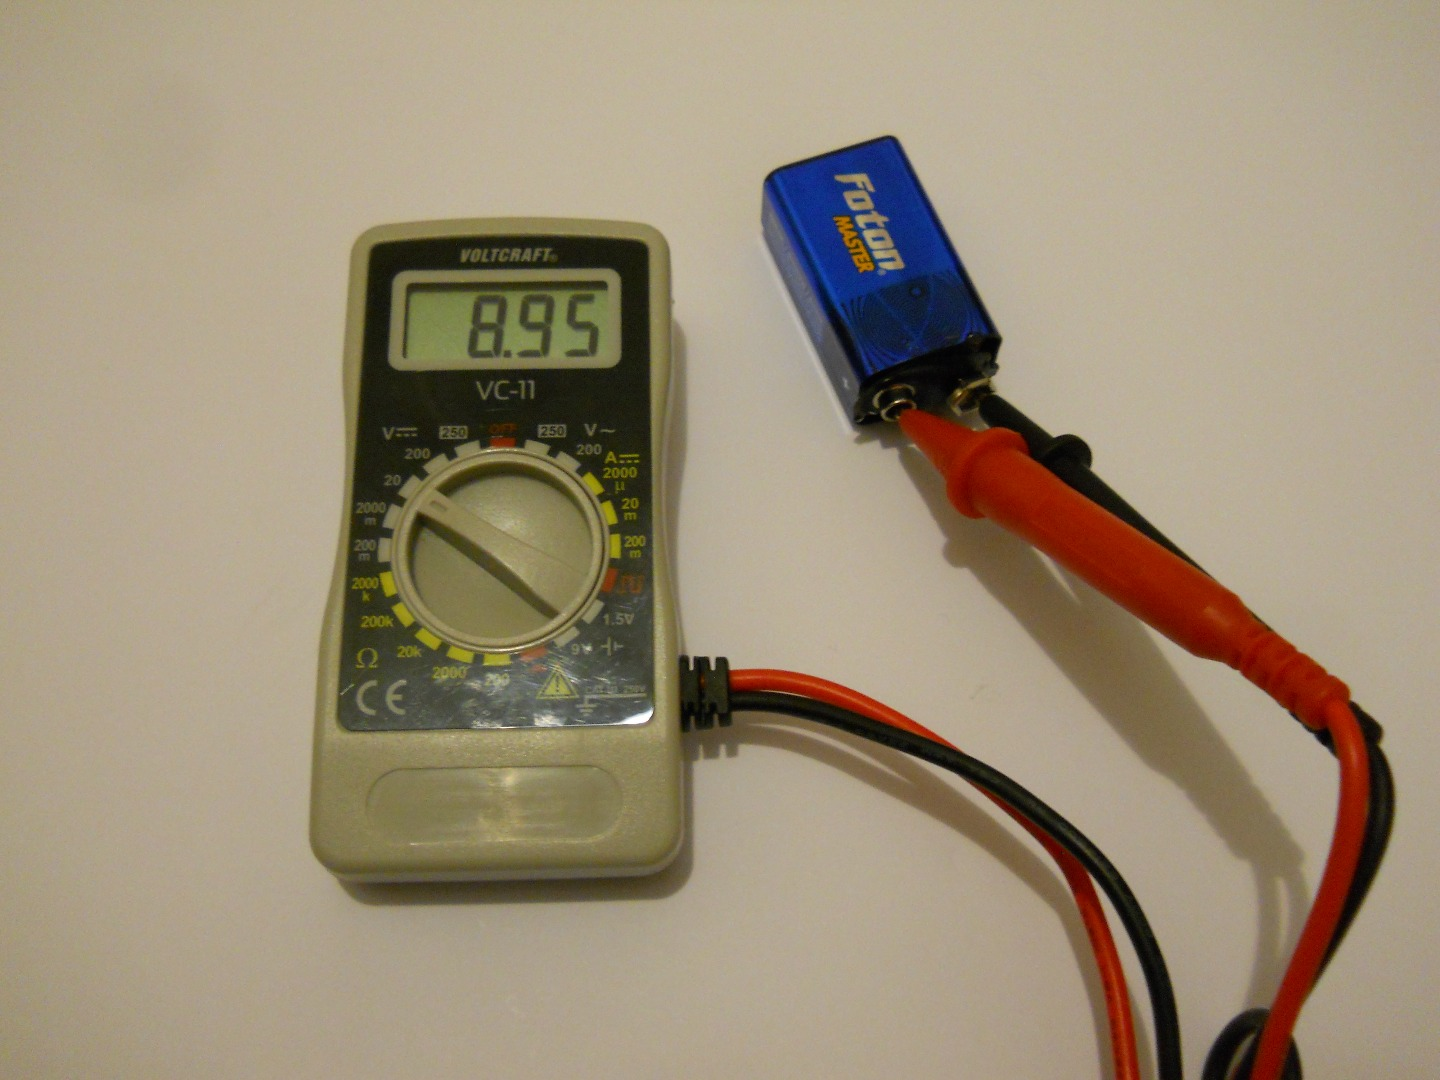 World First 9v Battery that can be Recharged from a USB Port